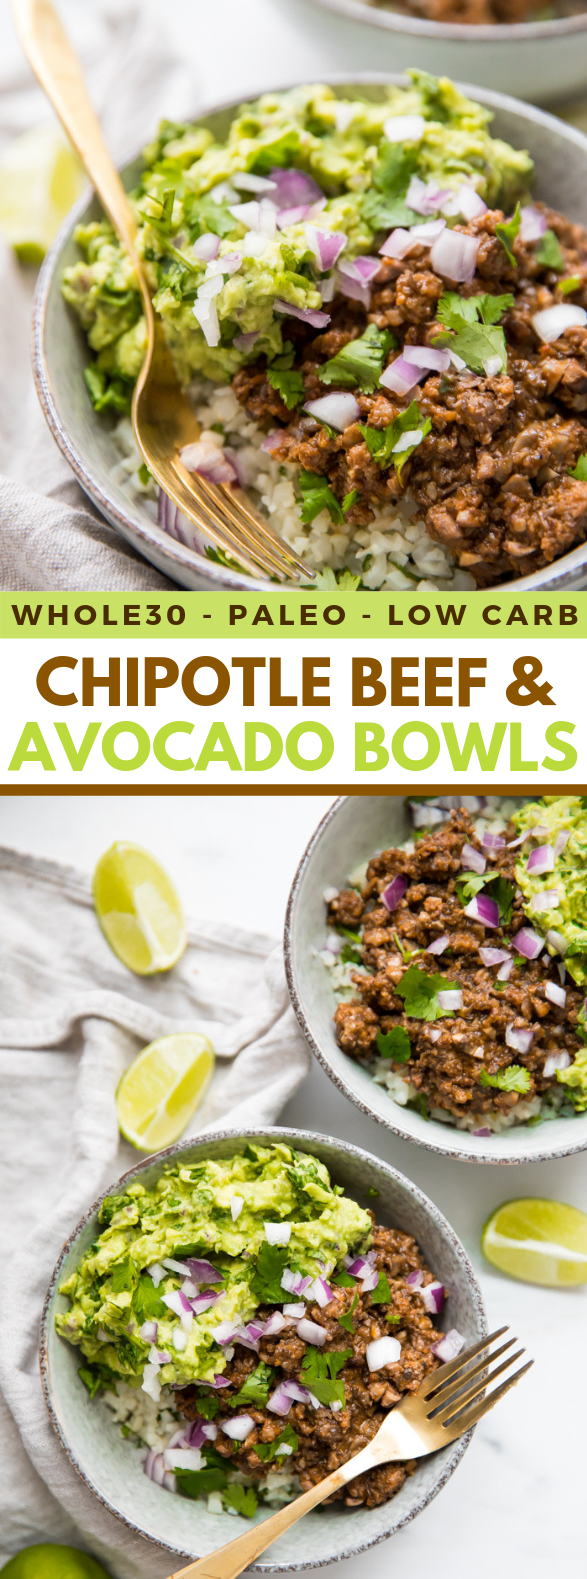 Whole30 Chipotle Beef & Avocado Bowls (Paleo Sofritas Copycat) #healthydiet #cleaneating